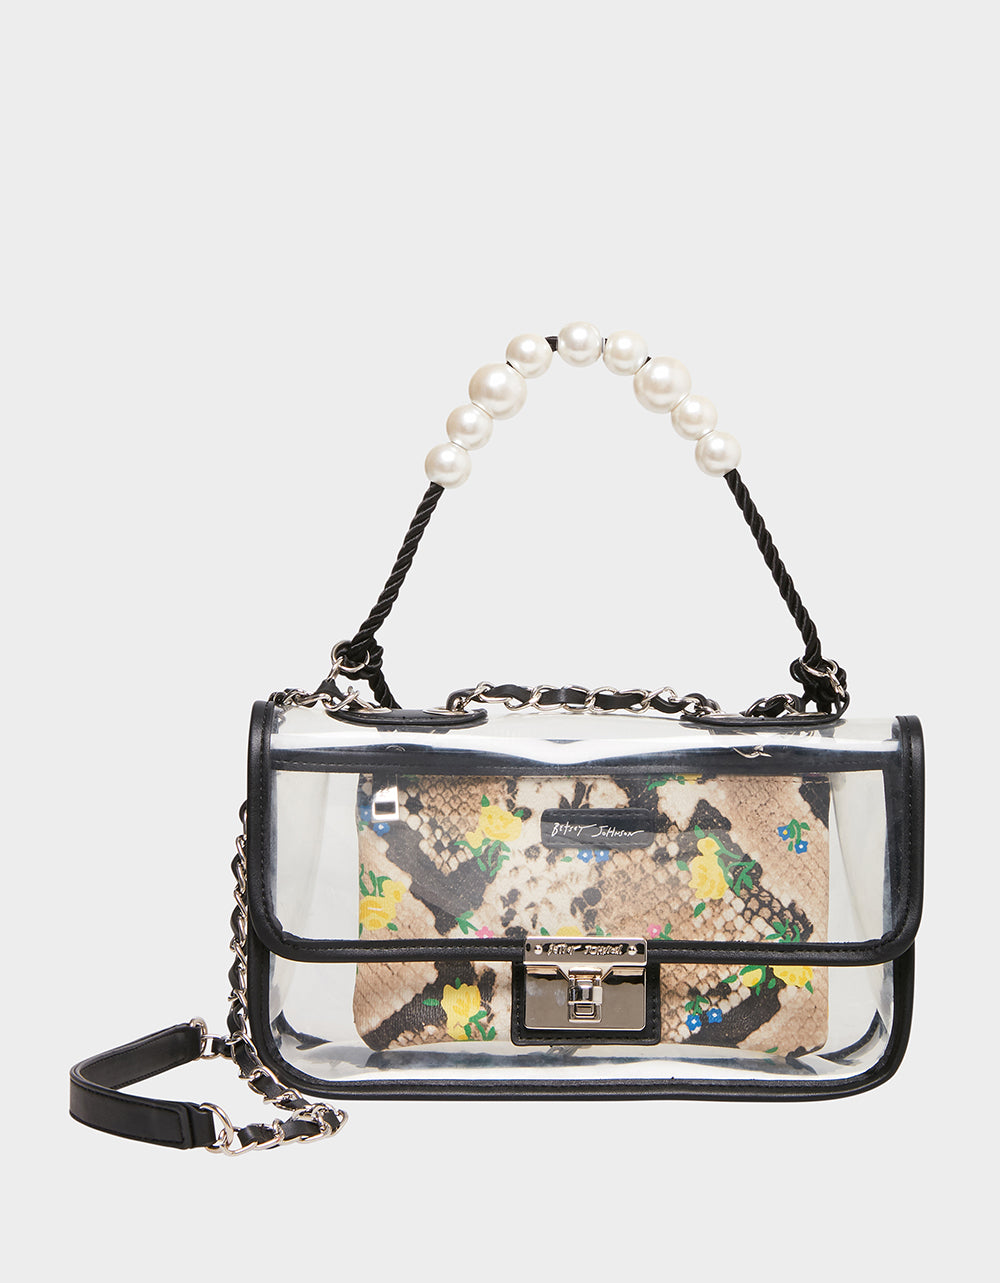 SEEING CLEARLY PEARL SWAG BAG NATURAL SNAKE